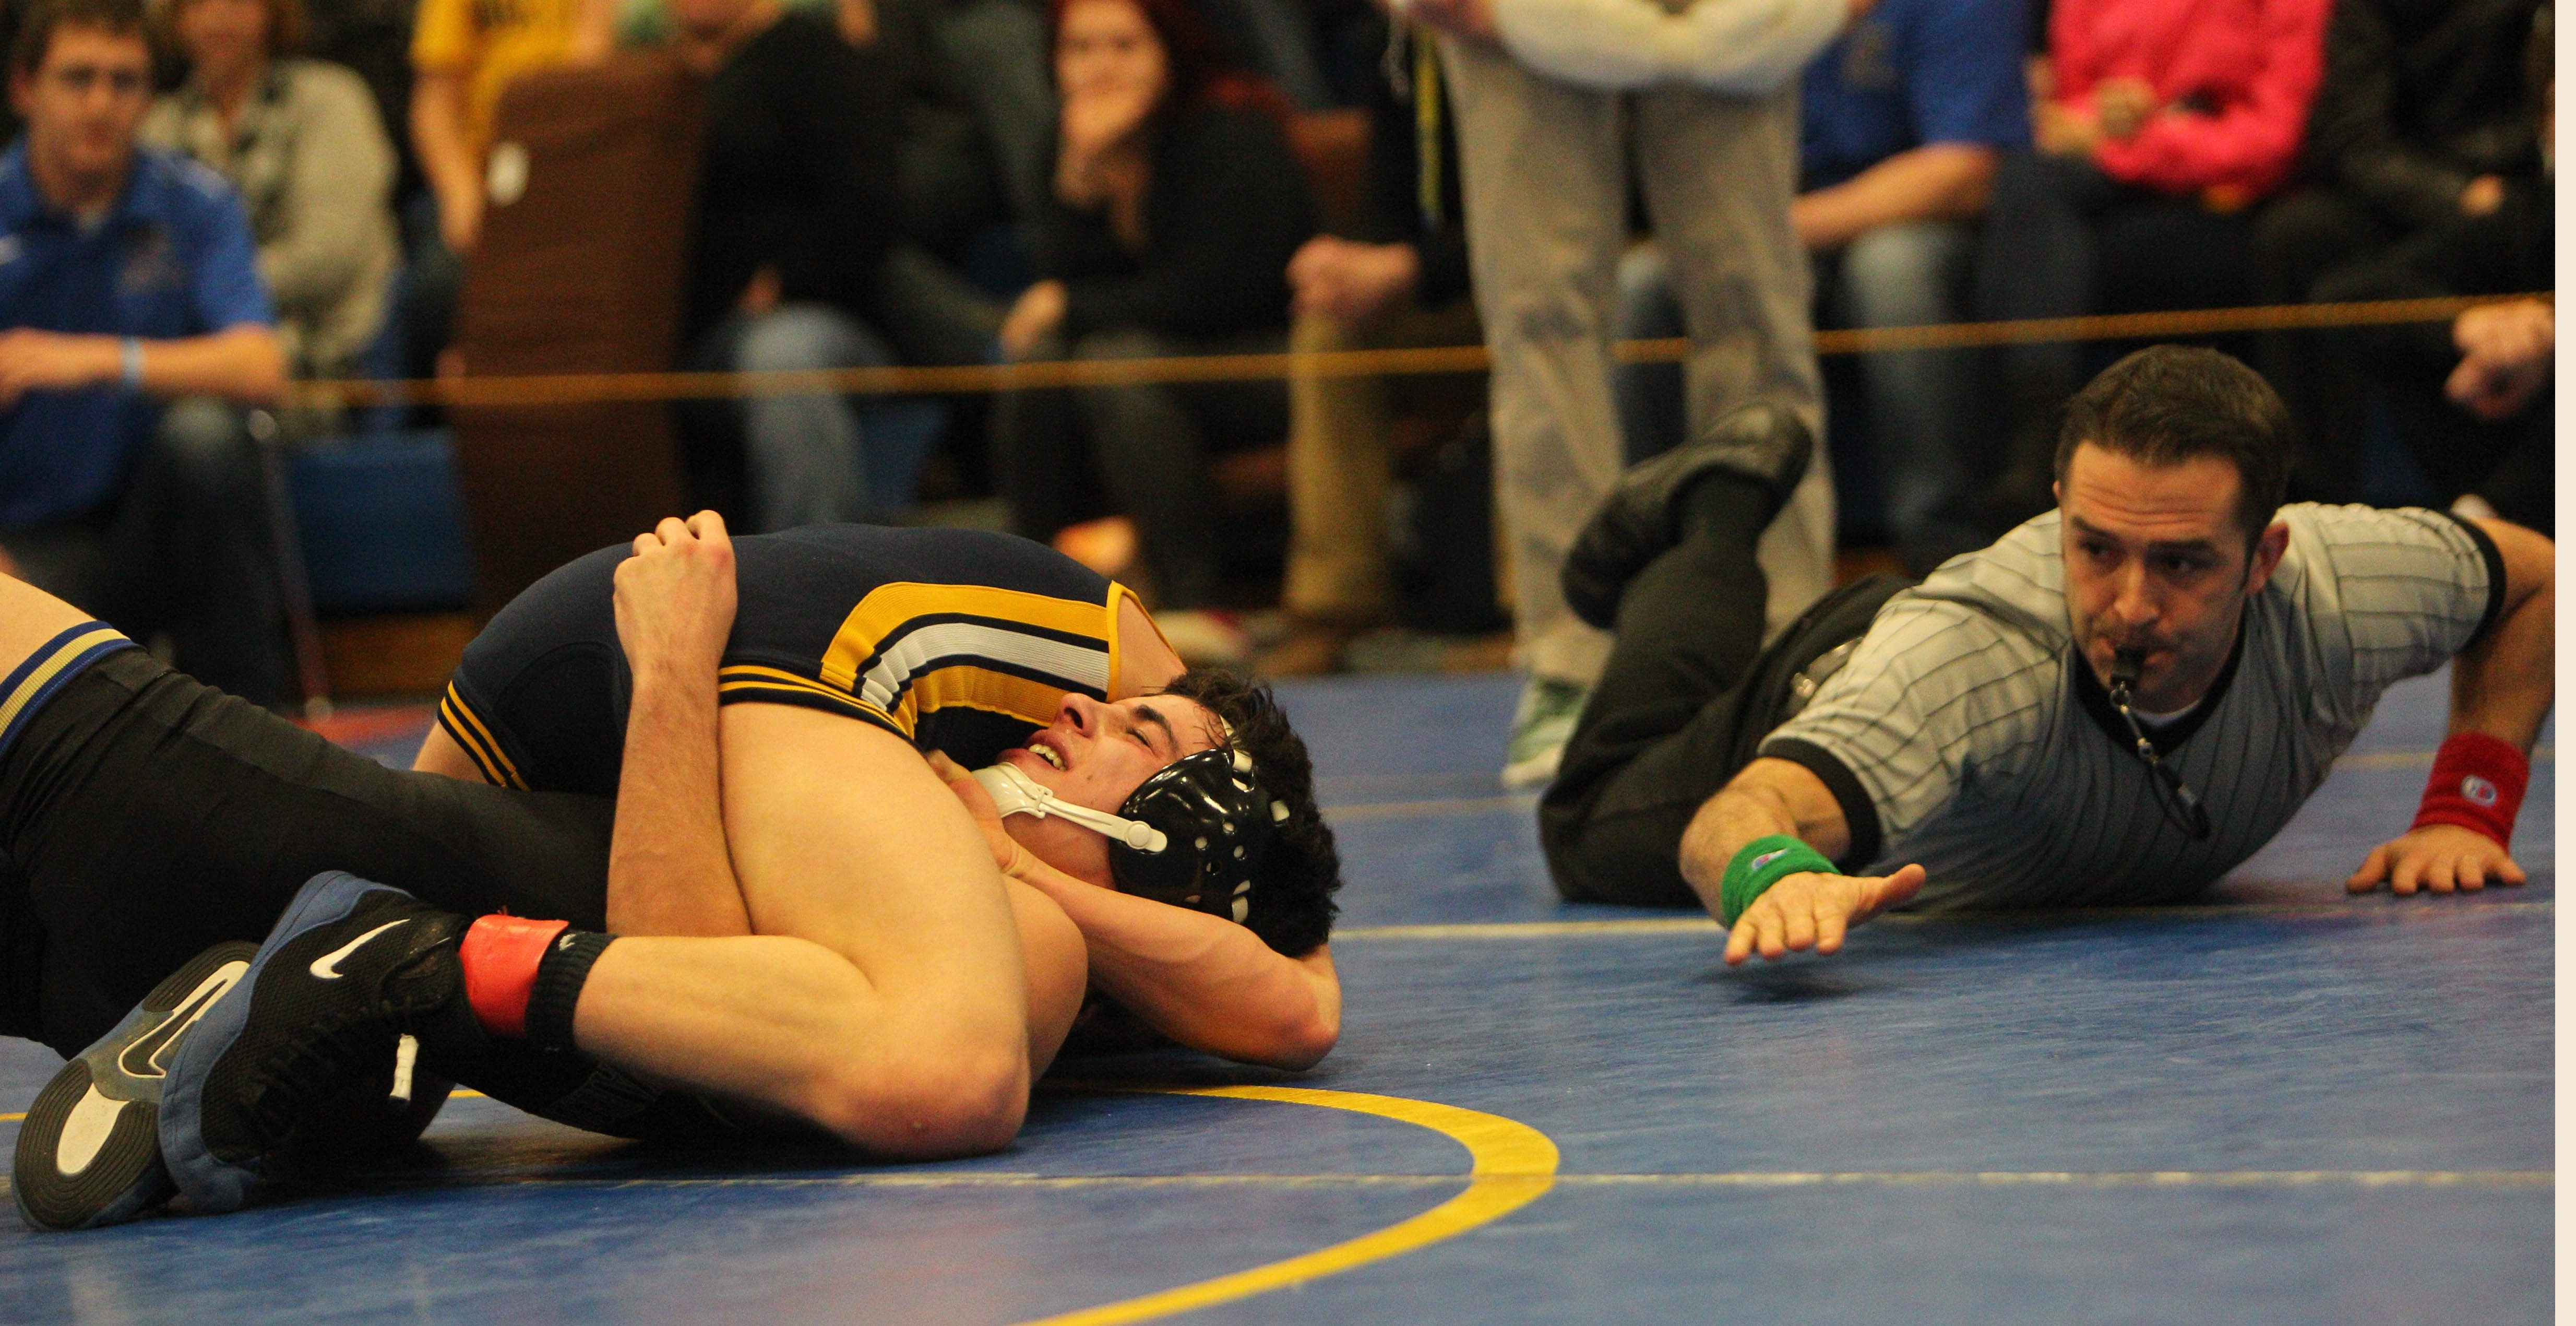 Anthony Orefice of Lockport scores a pin against Tommy Lancie of Webster-Schroeder just seconds before the end of their championship match in the 126-pound class of the Niagara Frontiers Officials meet.